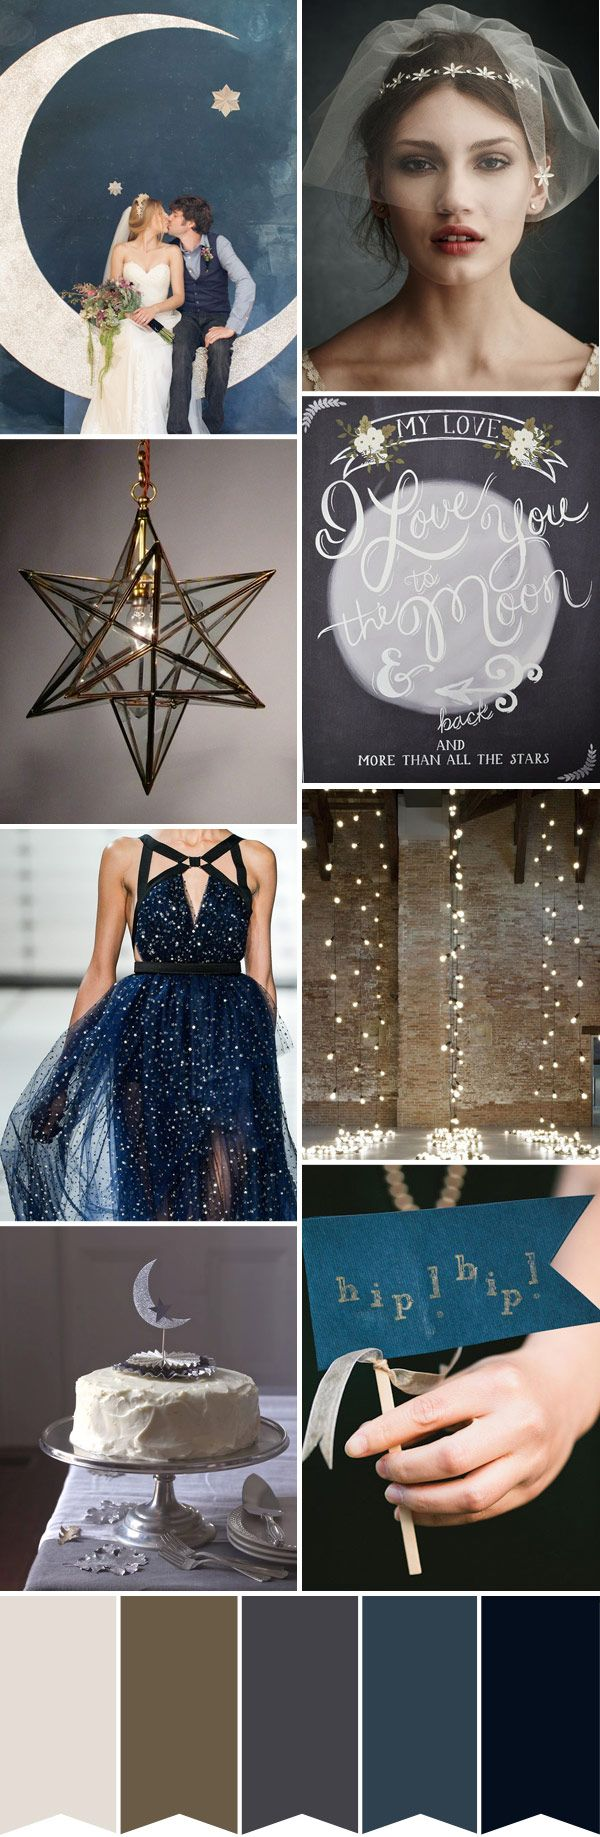 i love you to the moon and back - starry night wedding